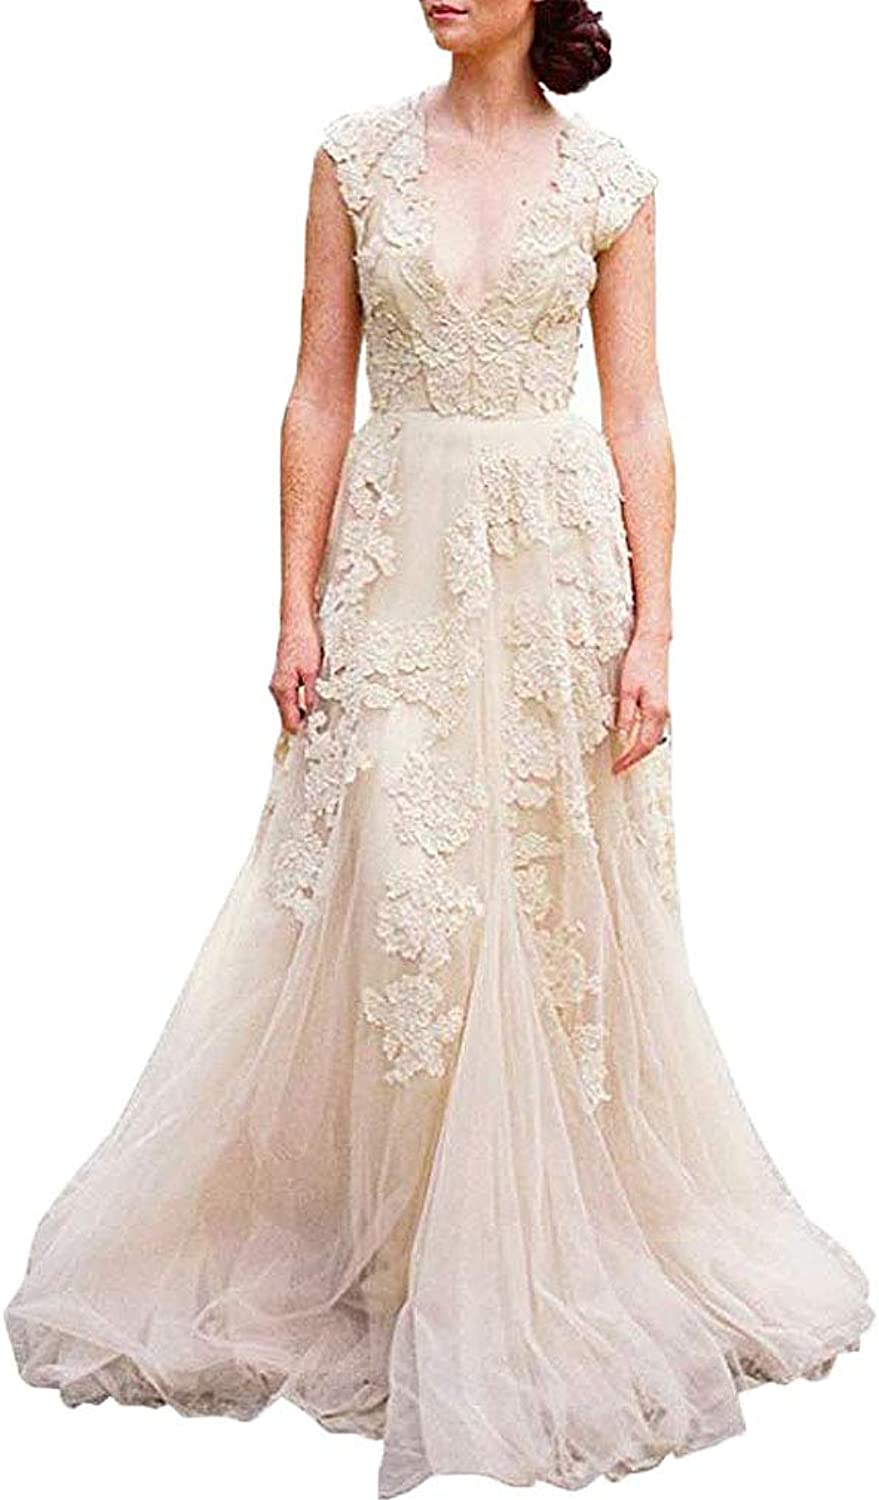 Fashionbride Women's Cap Sleeve V Neck Bride Boho Wedding Dress with Lace ED89